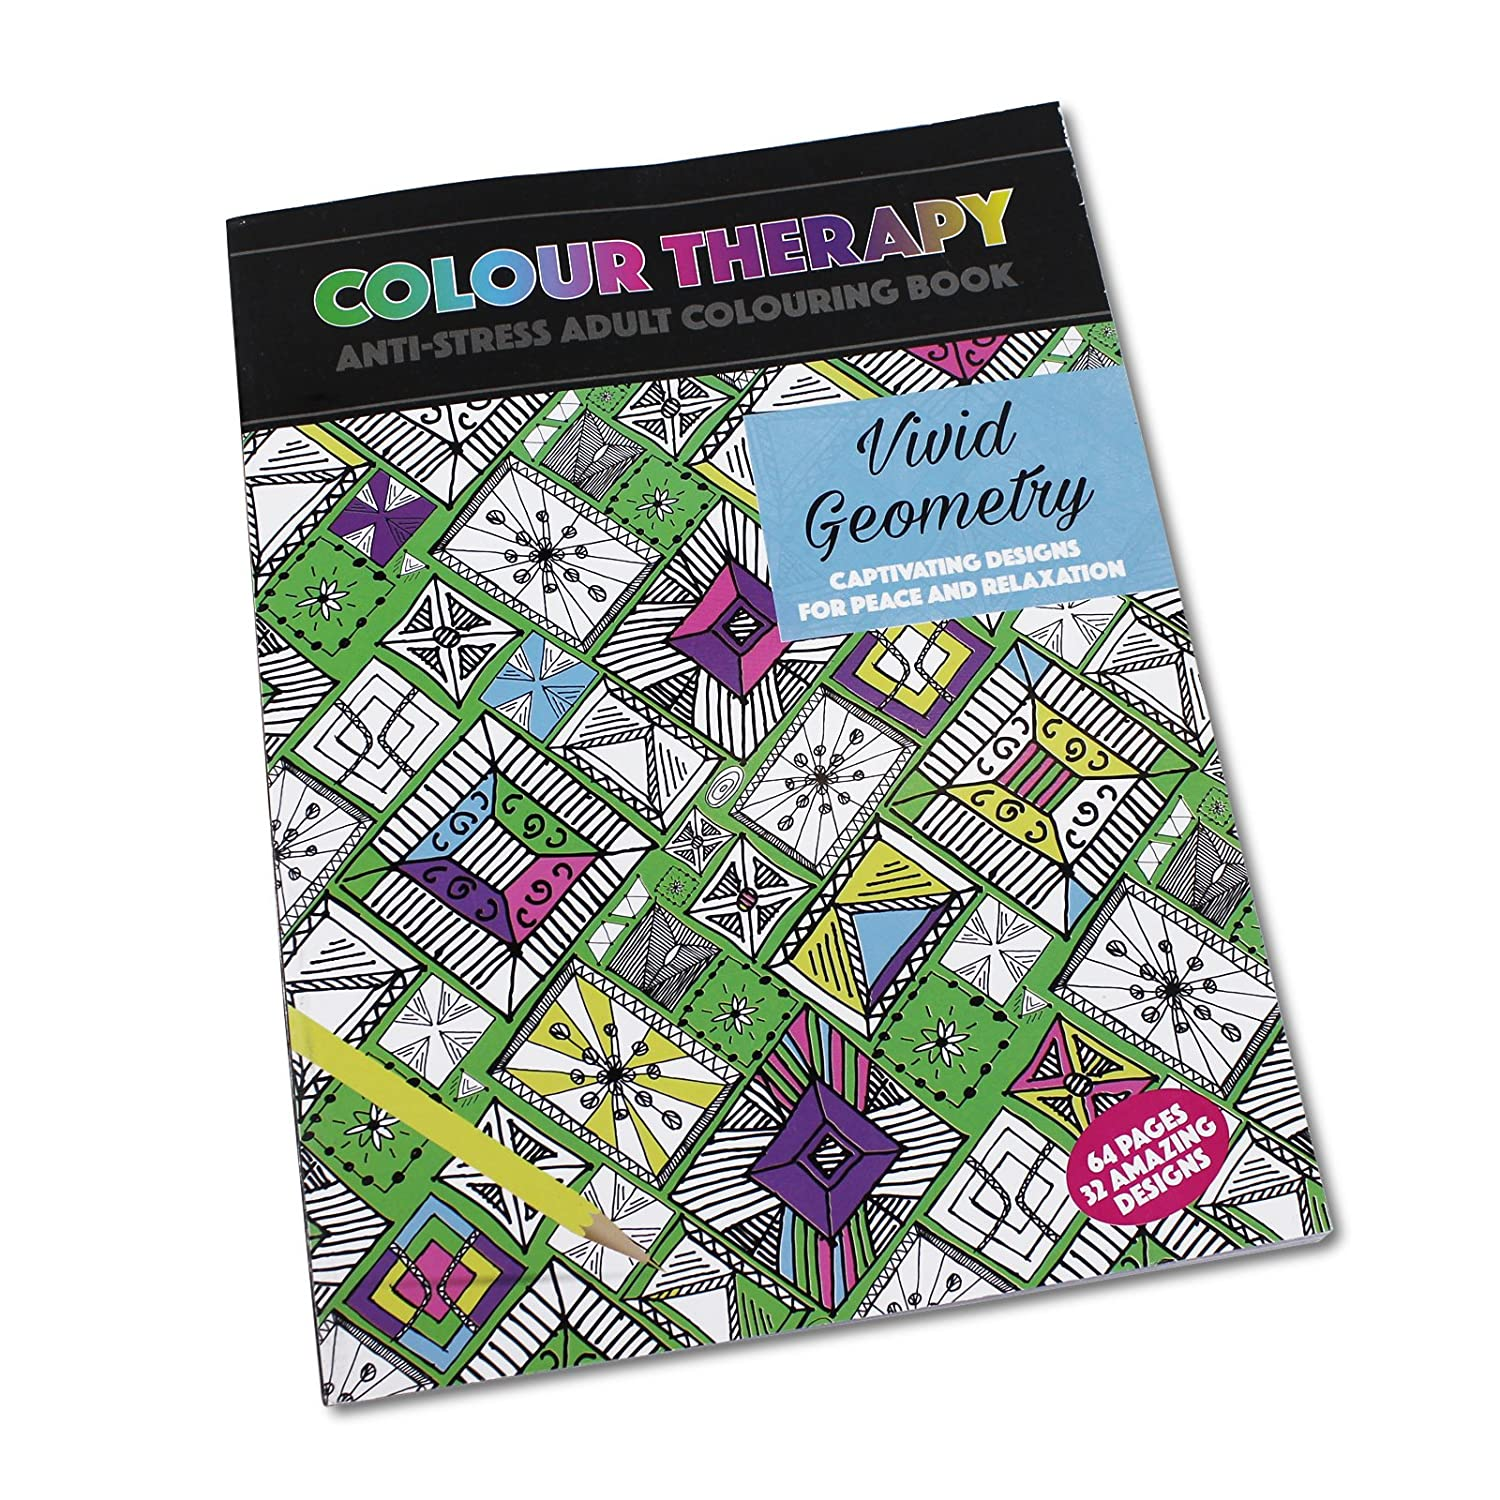 Colour therapy for relaxation - Colour Therapy Anti Stress Colouring Book Vivid Geometry 64 Pages Paperback Amazon Co Uk Kitchen Home